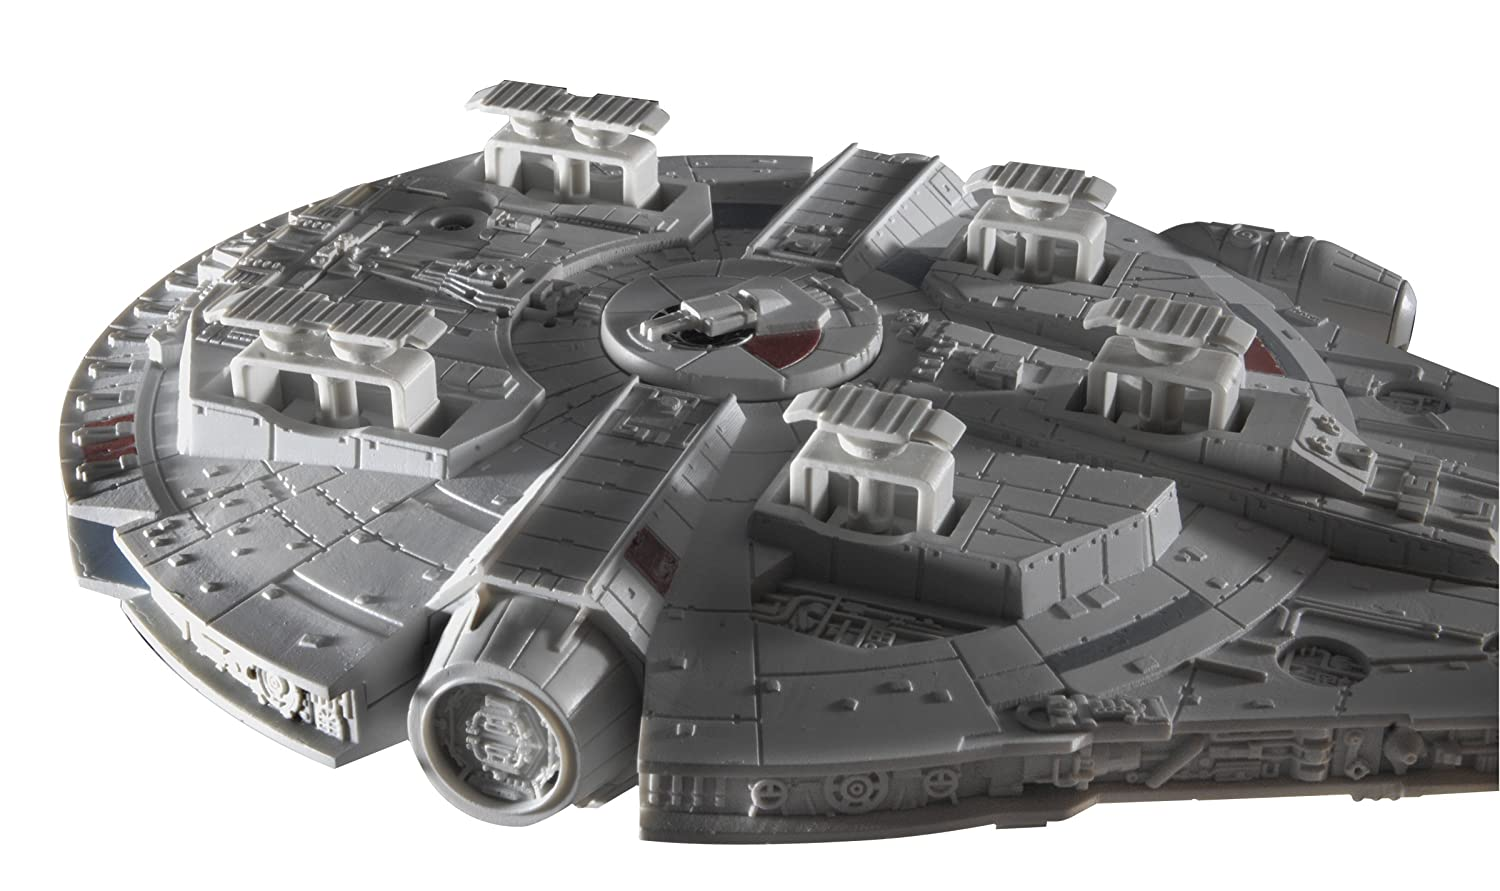 Revell 85-1668 Snaptite Build and Play Star Wars Millennium Falcon Hobby Model Kit